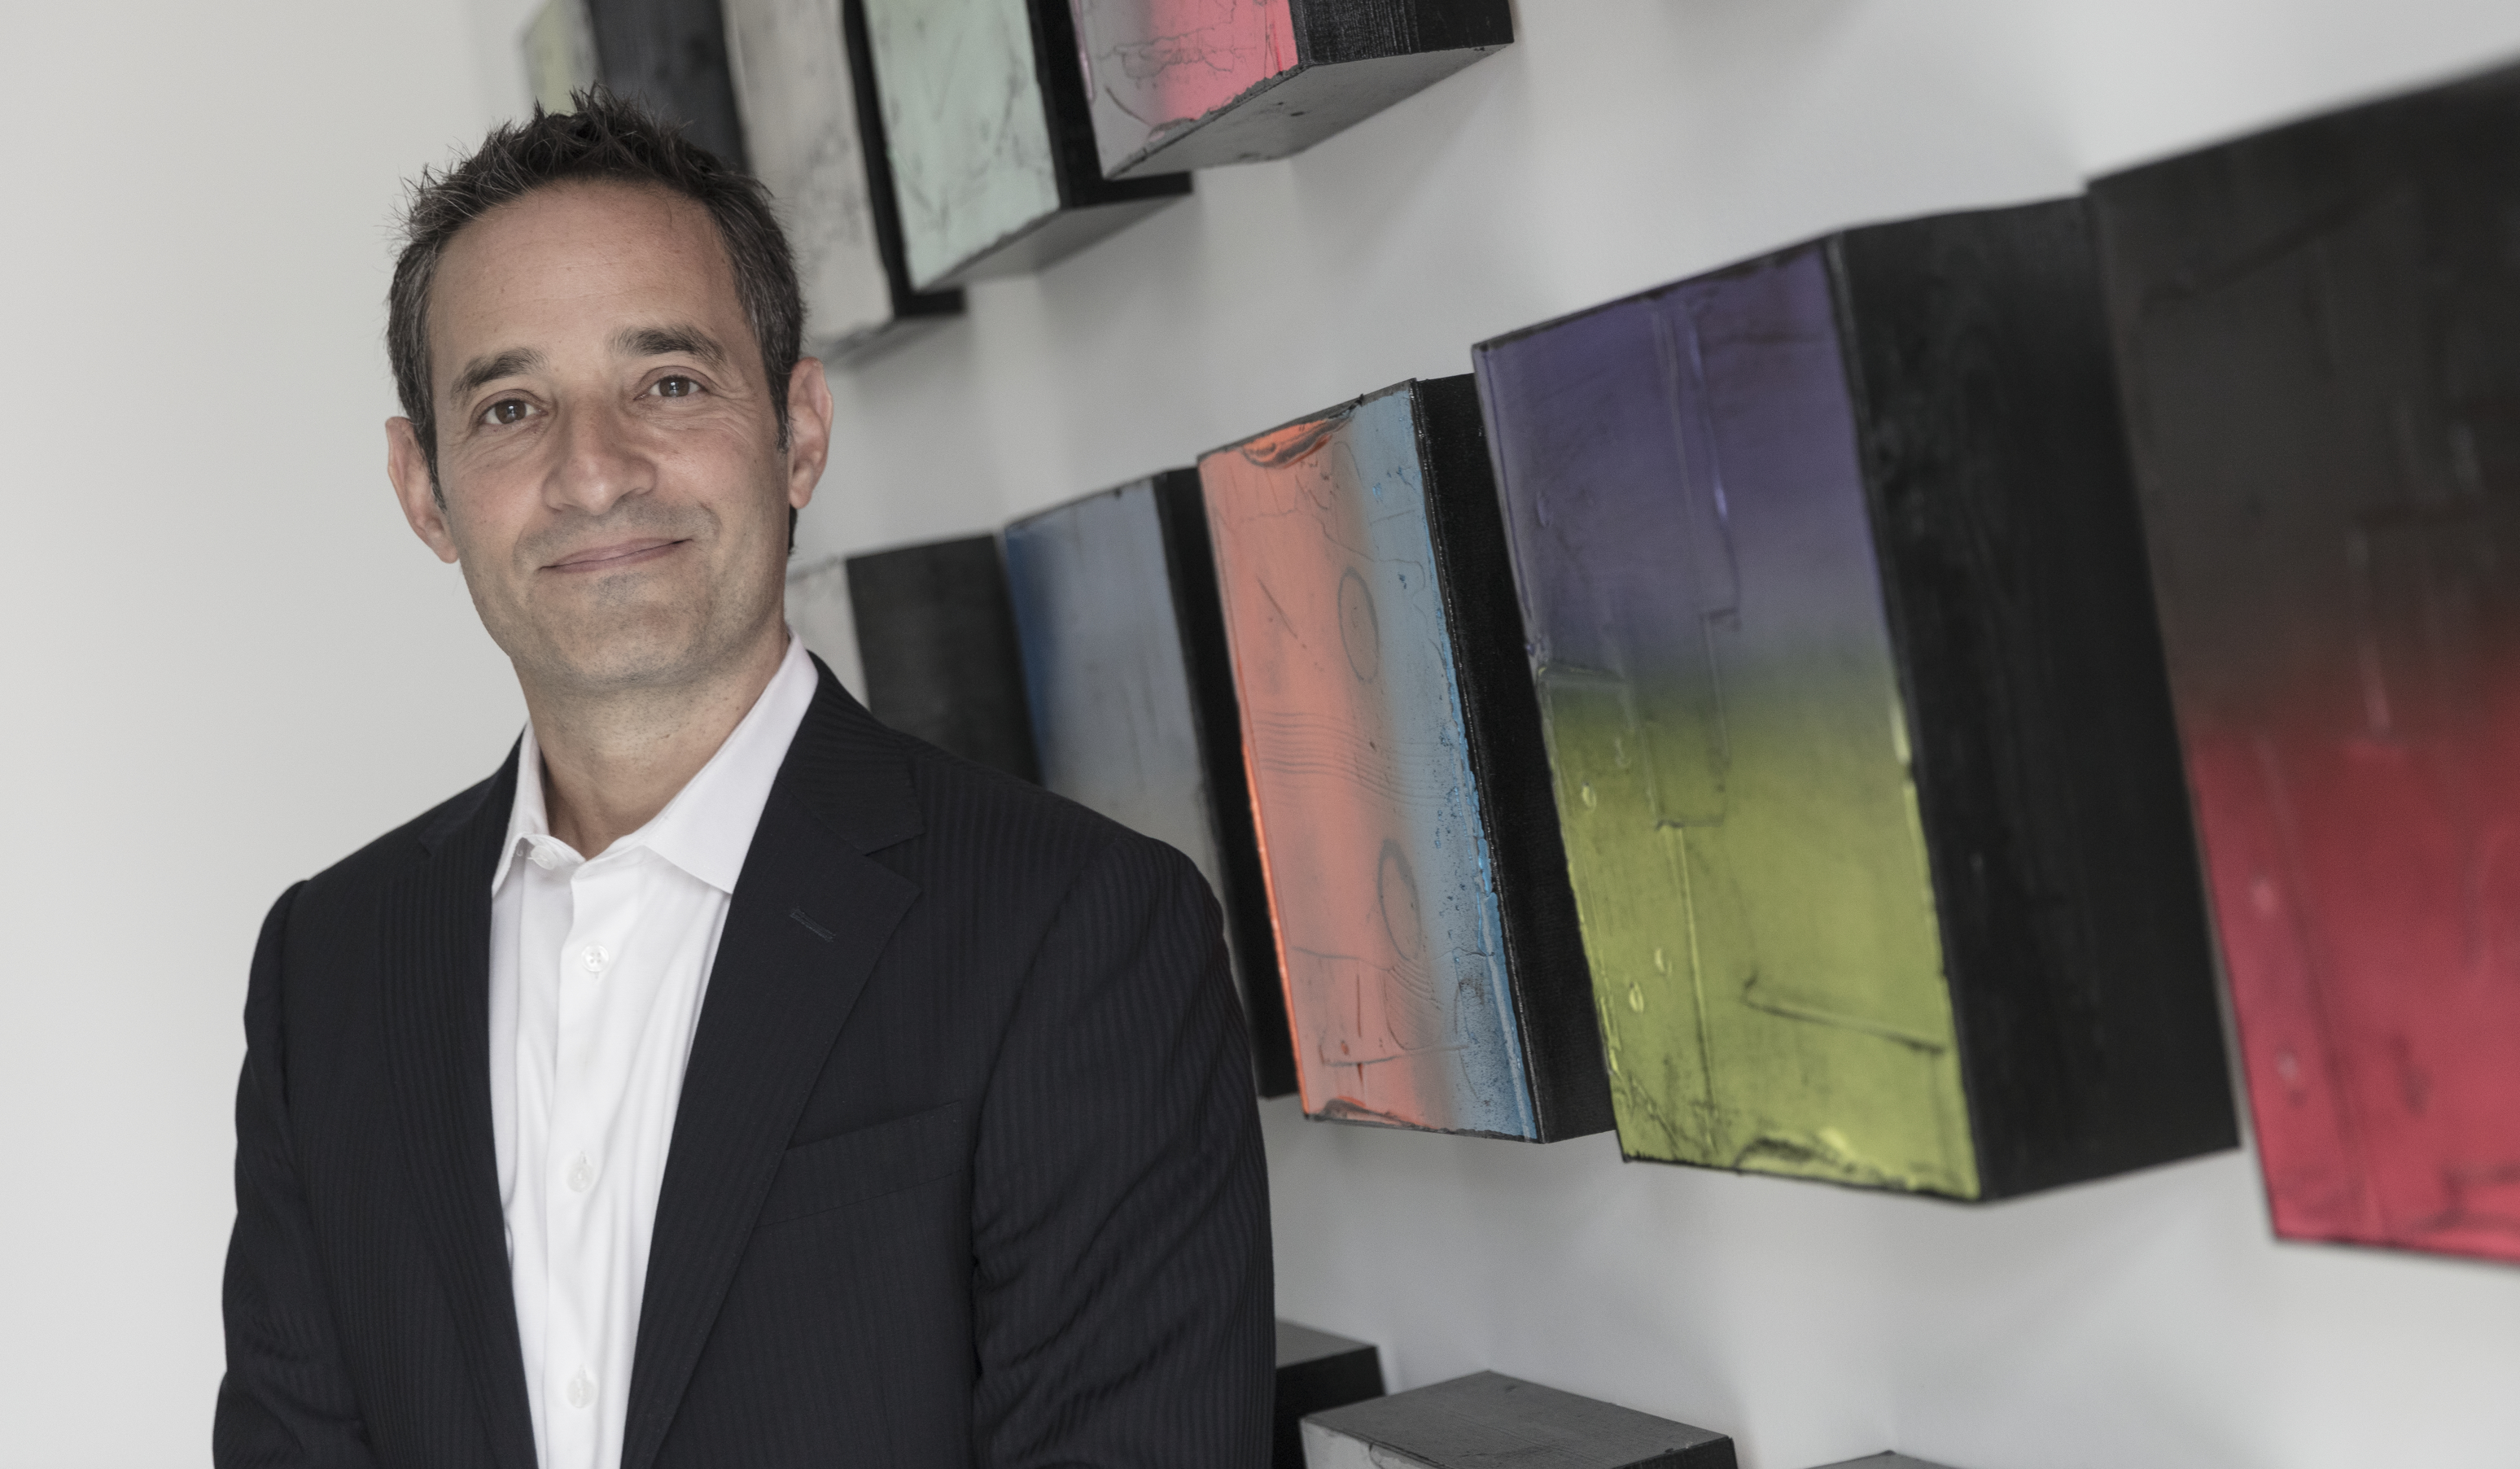 josh linkner innovation speaker - Sweeney Speakers Listings